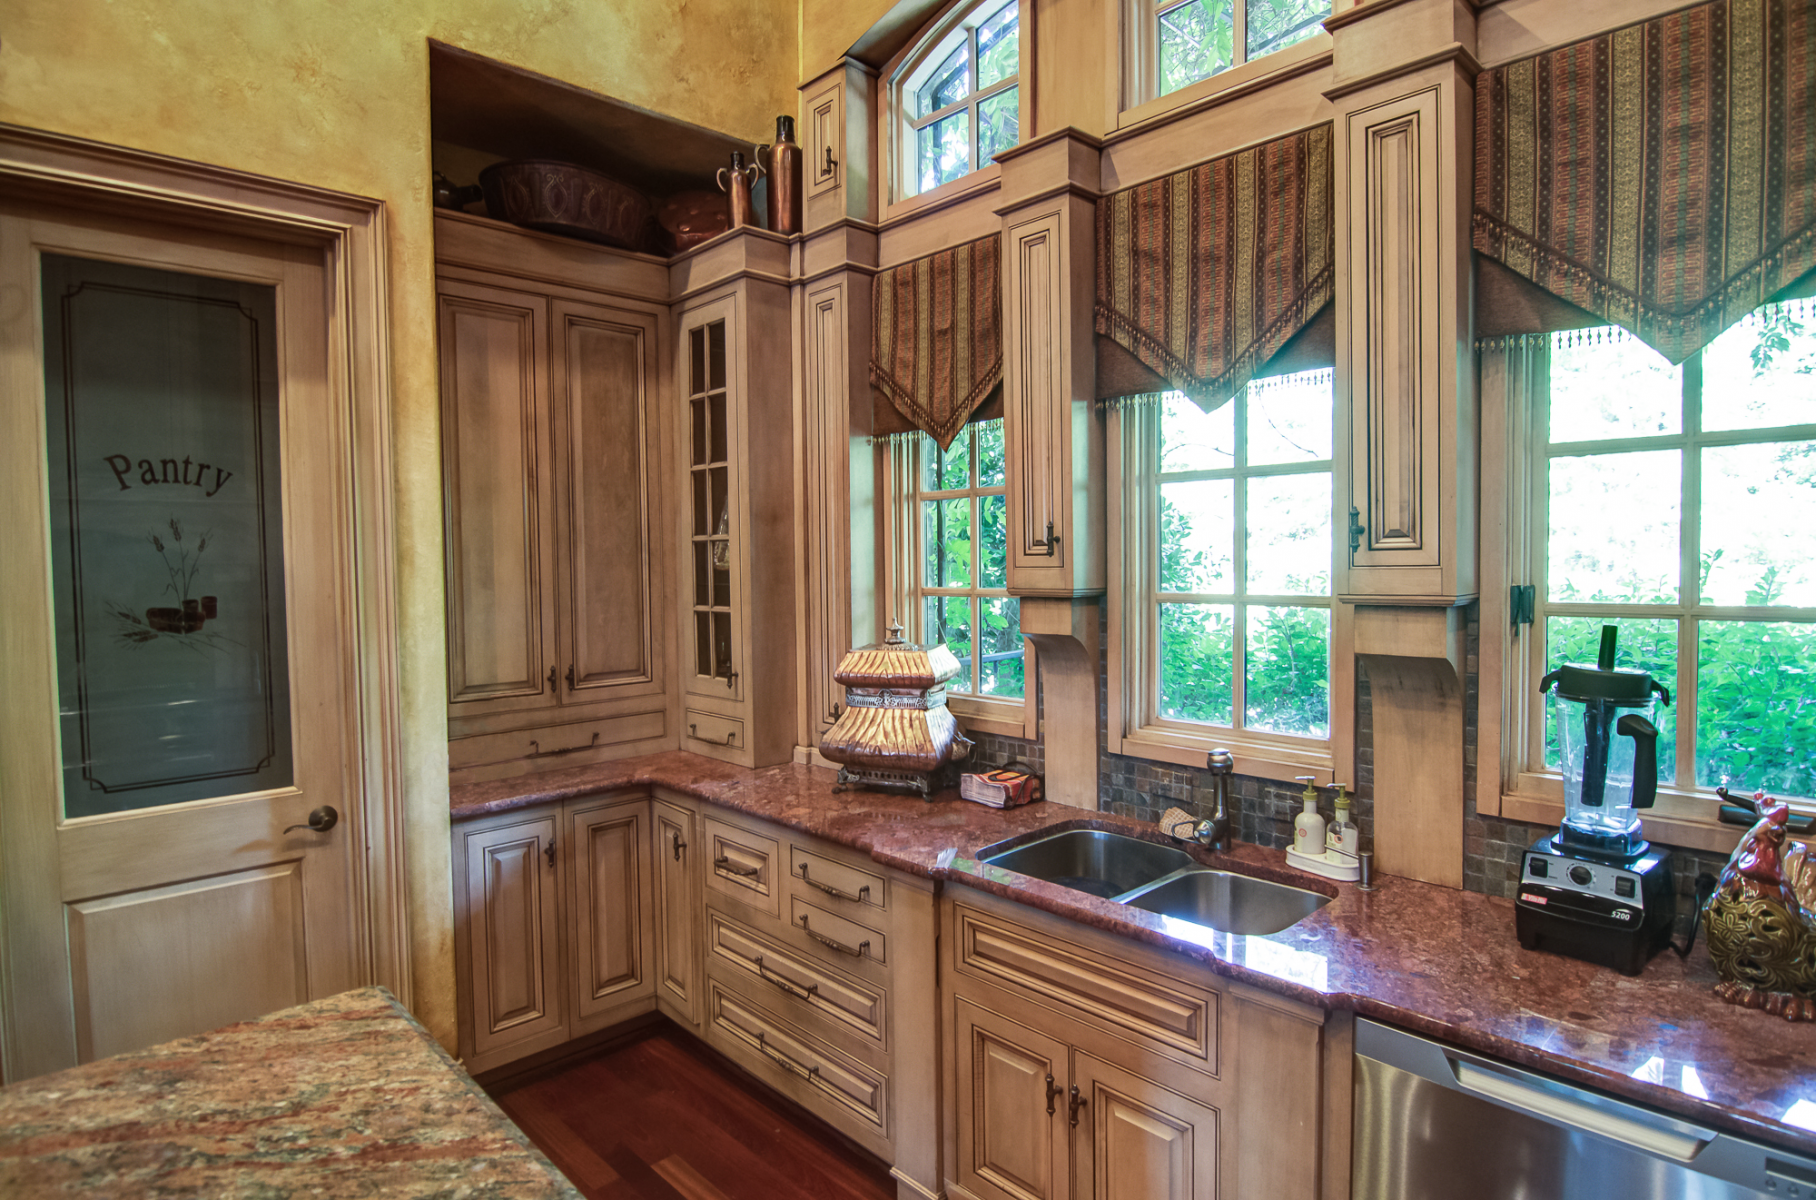 European colored plaster walls with matching cabinet glaze on wall panels.